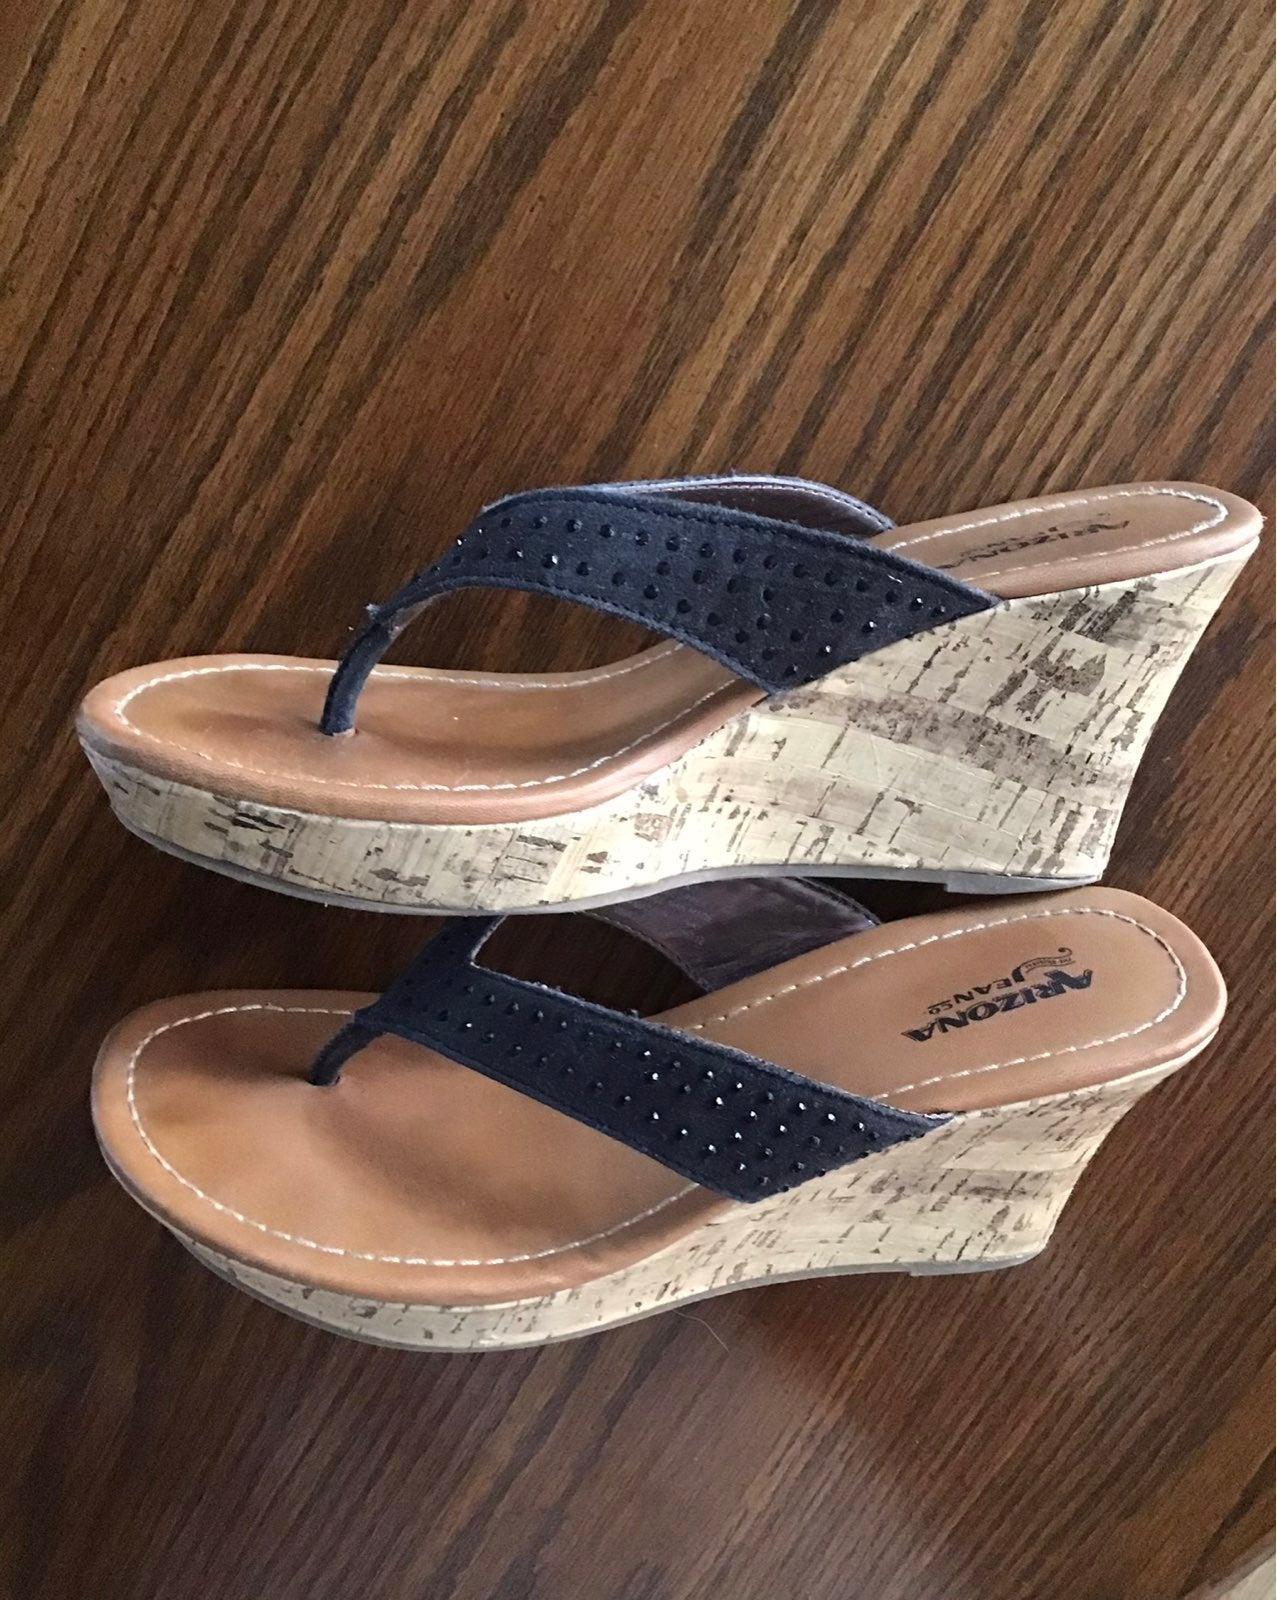 Arizona Jean Company Sandals